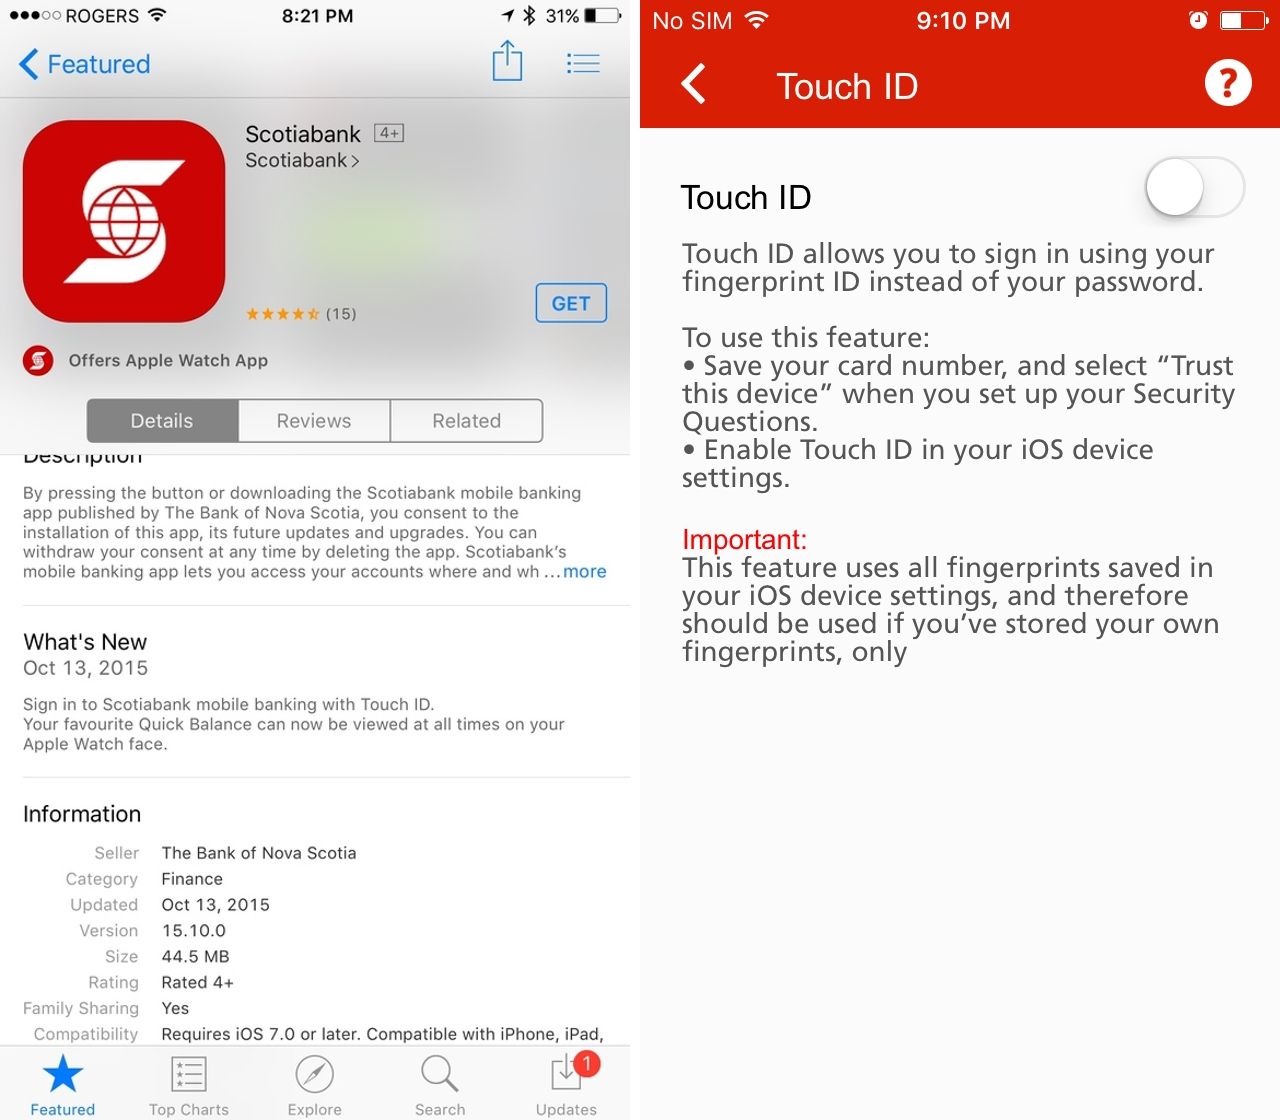 Scotiabank's iOS app update adds Touch ID support | MobileSyrup